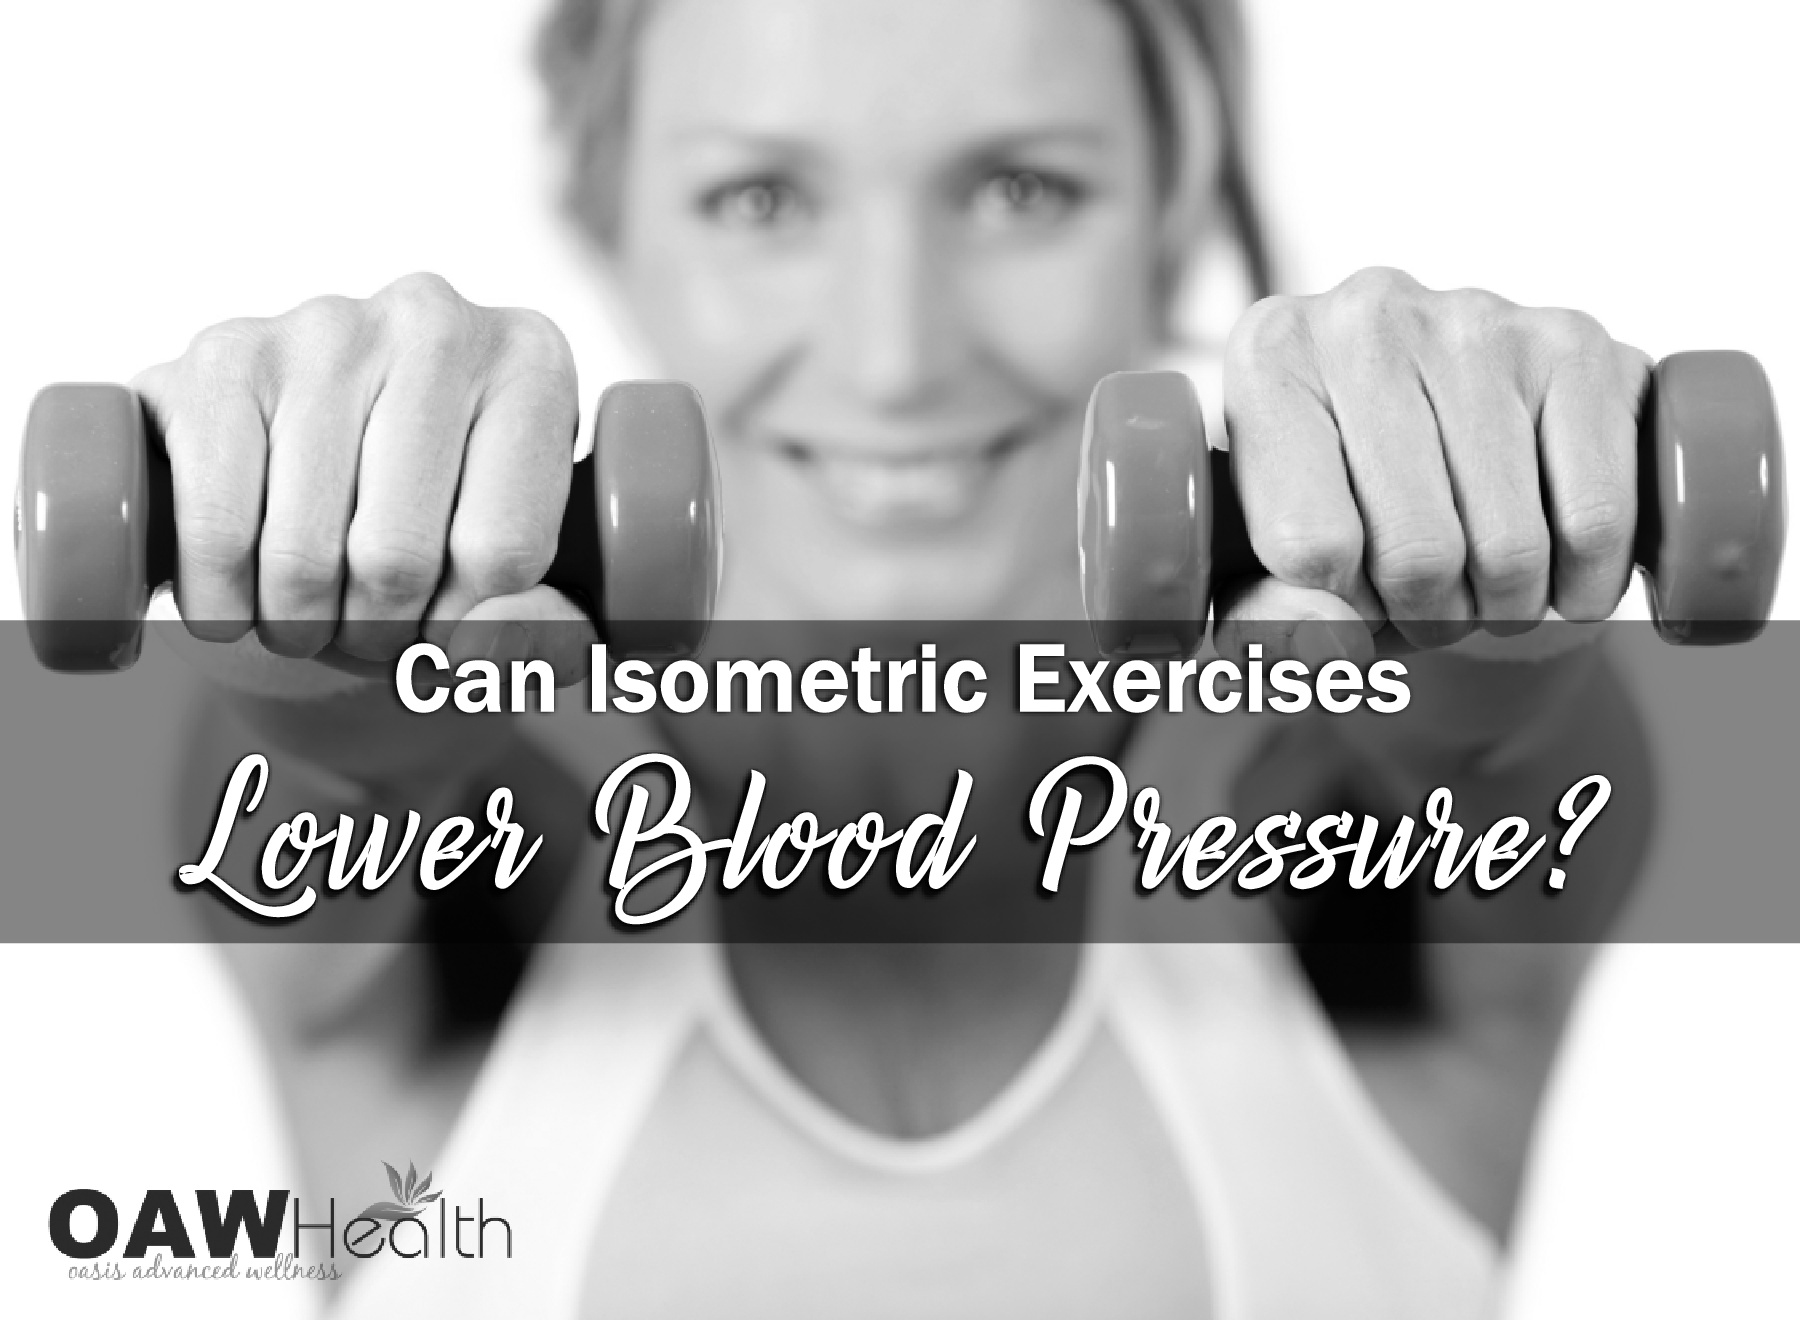 Can Isometric Exercises Lower Blood Pressure?